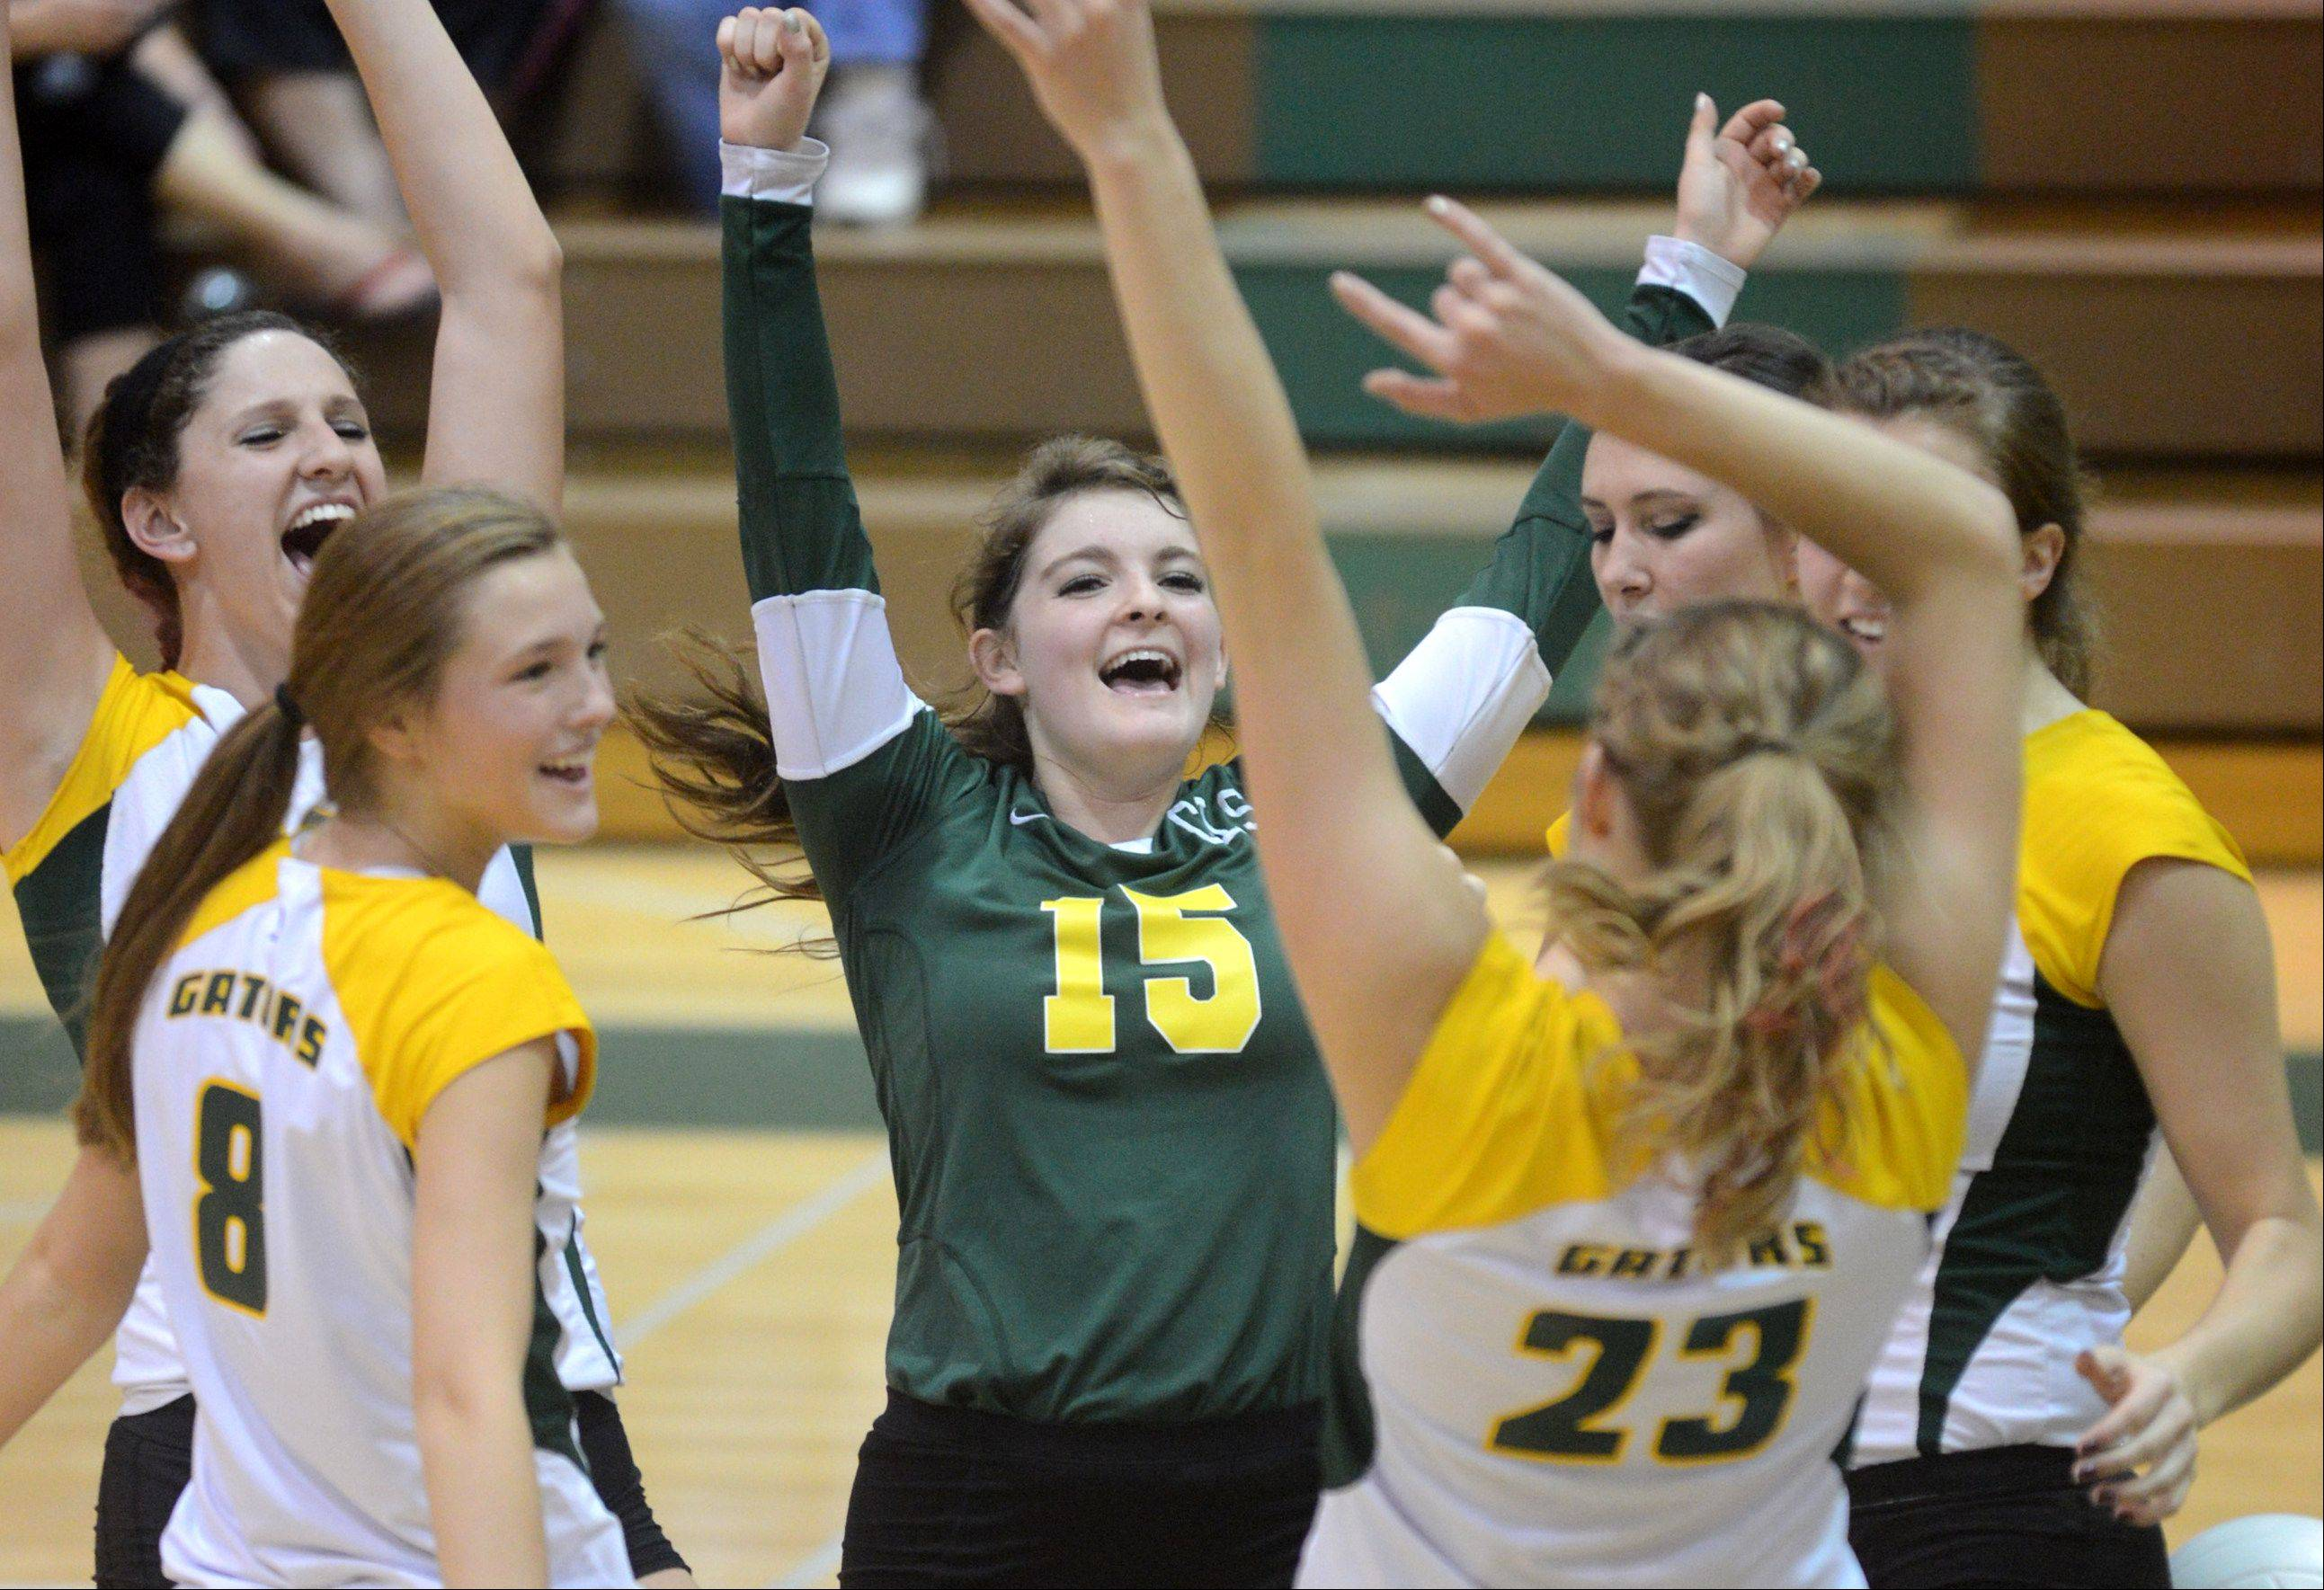 Crystal Lake South's Hannah Wilson, center, gets revved up with her teammates during a victory over Huntley at Crystal Lake on Thursday night.